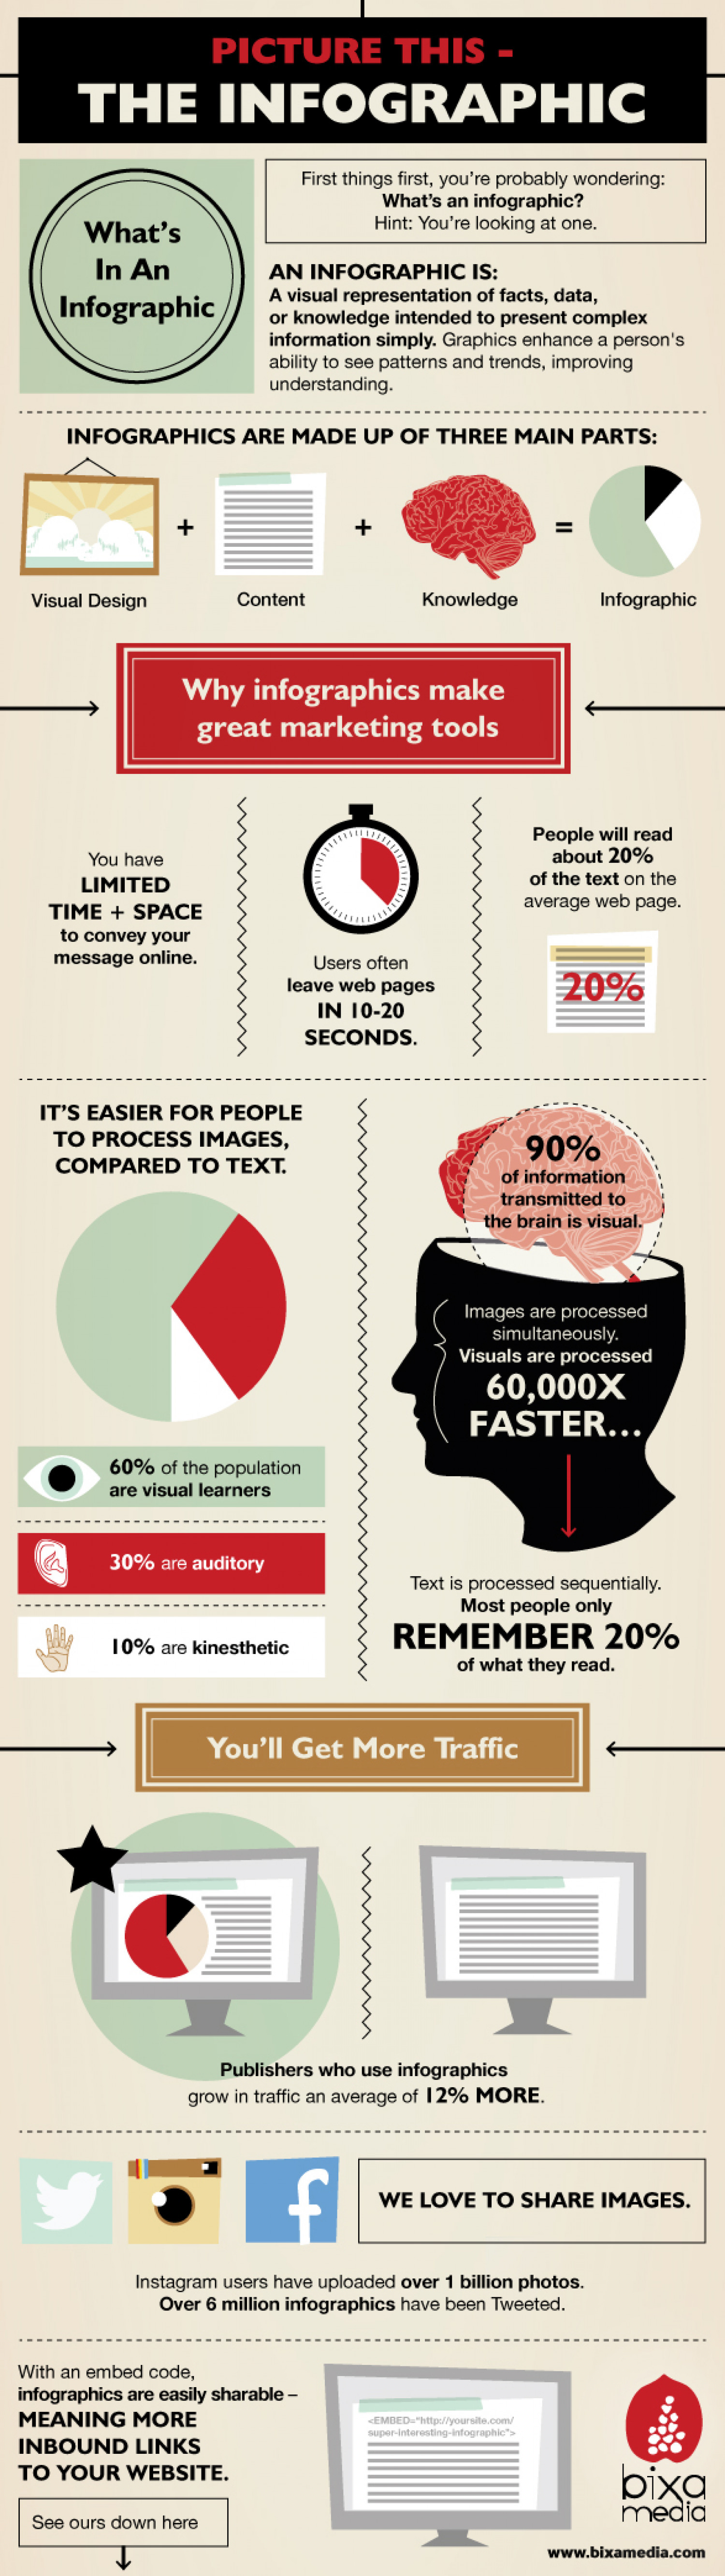 Picture This- The Infographic Infographic